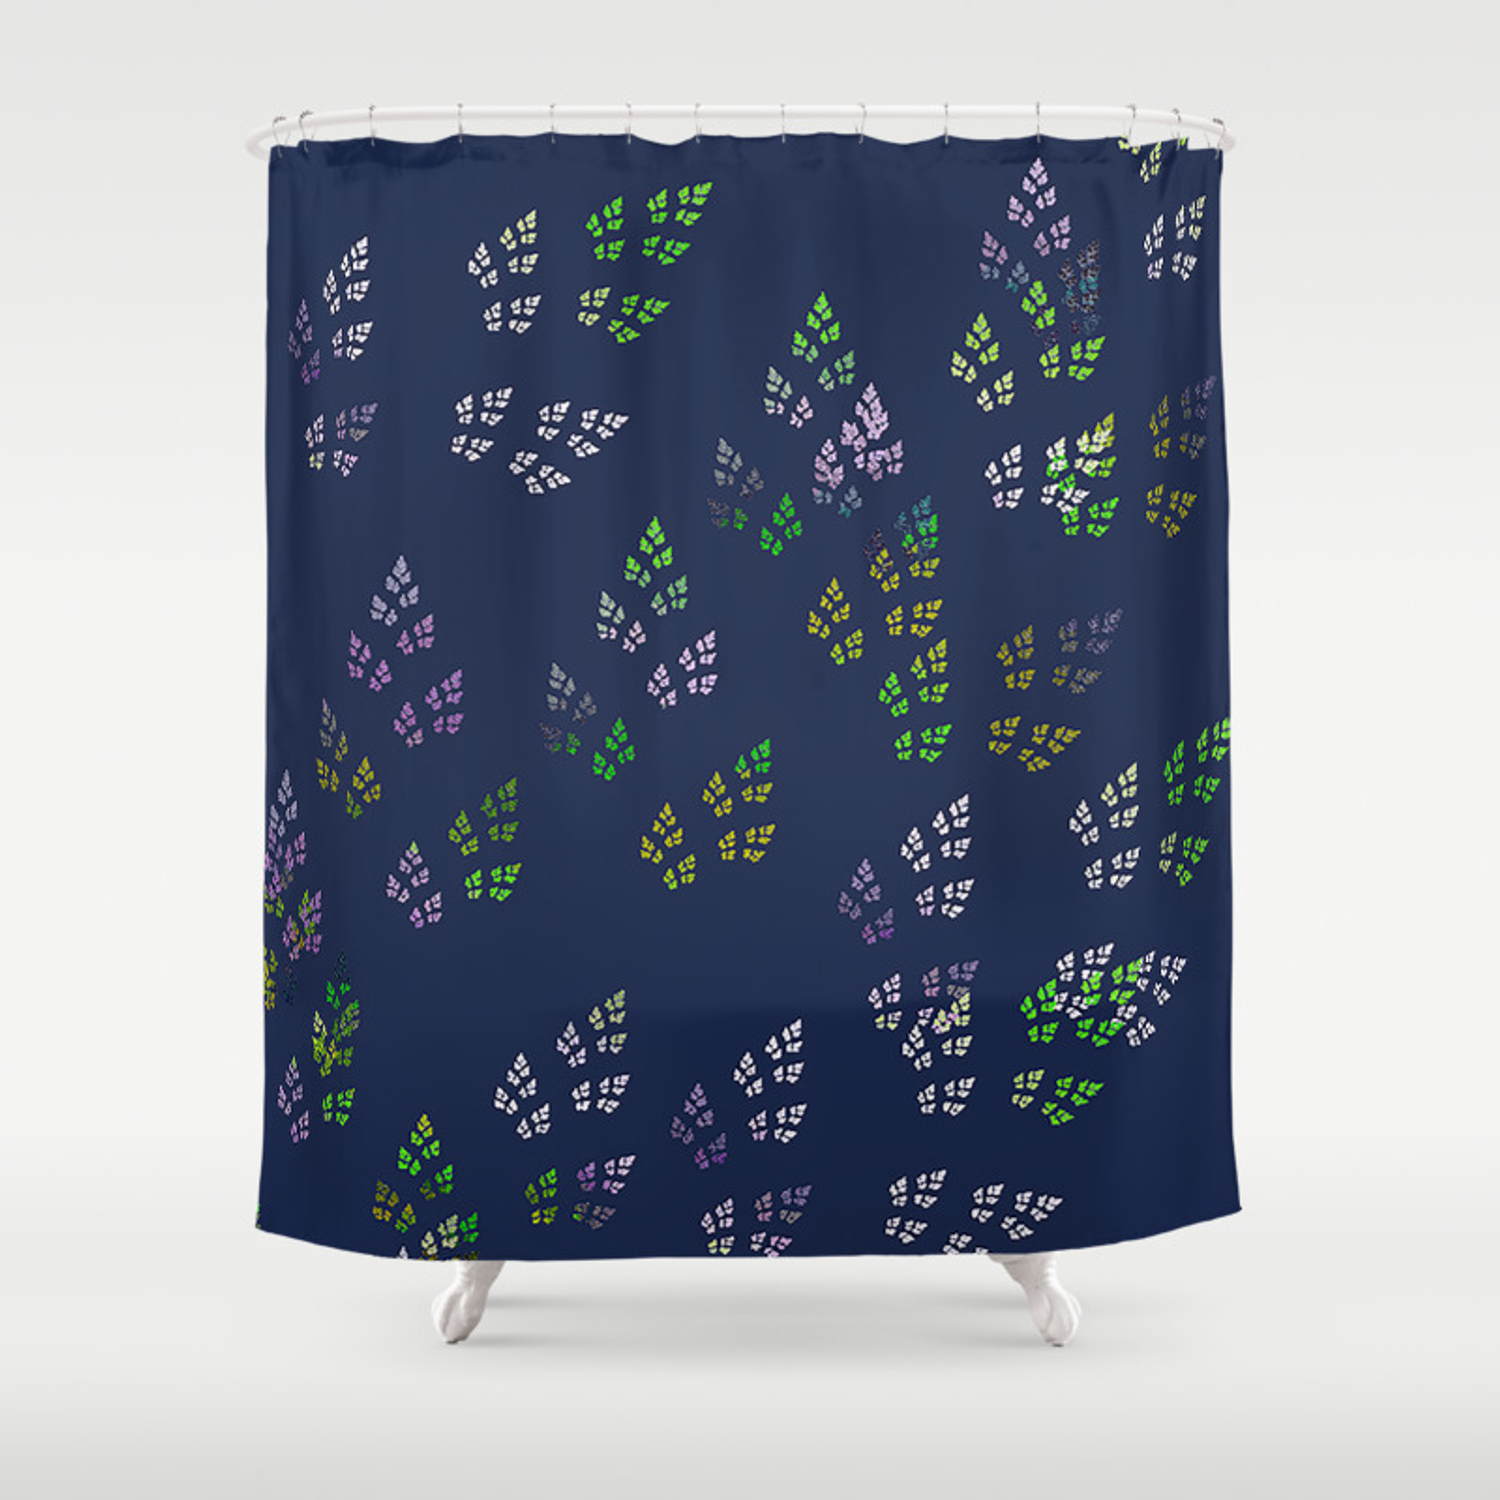 Abstract Fabric Designs 4 Duvet Covers Pillows More Shower Curtain